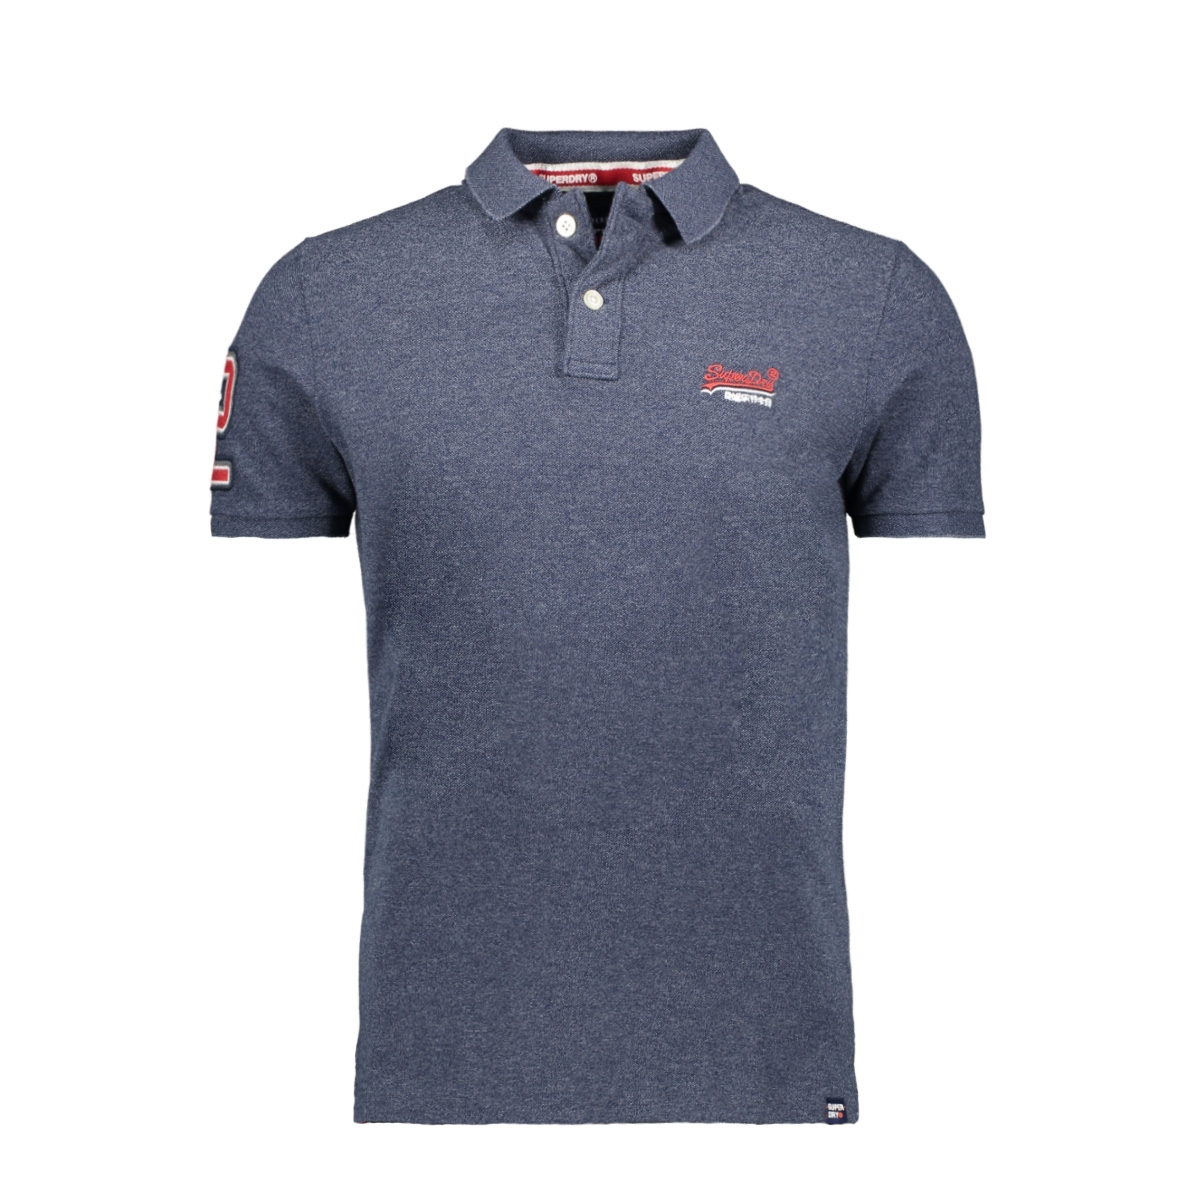 classic pique s s polo m1100004a superdry polo creek navy grindle